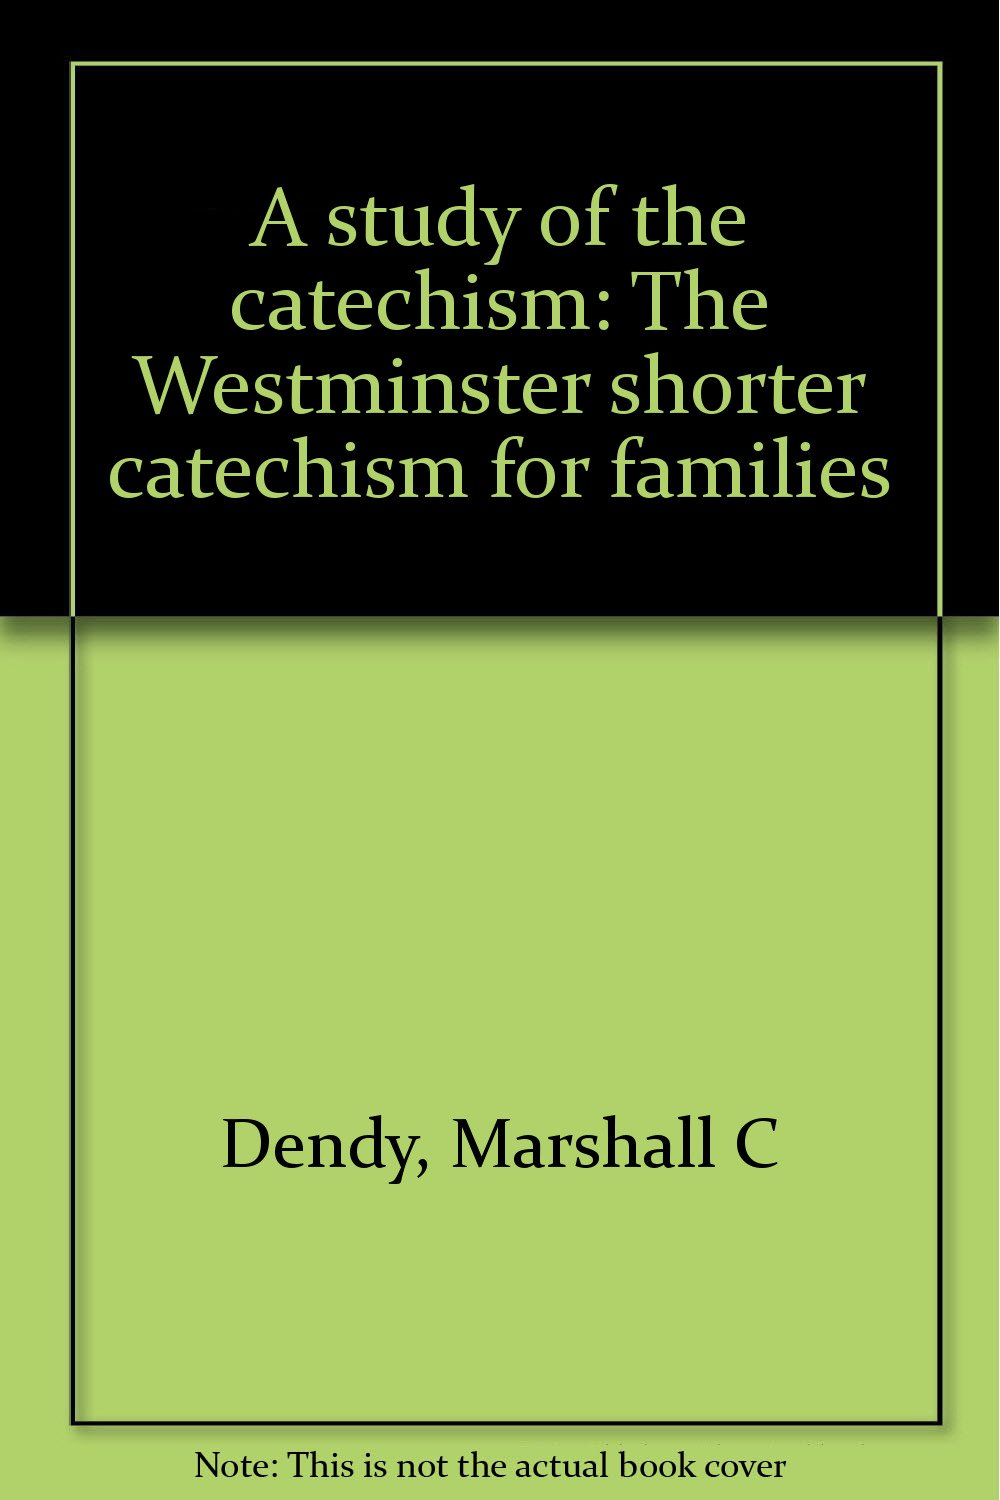 A study of the catechism: The Westminster shorter catechism for families